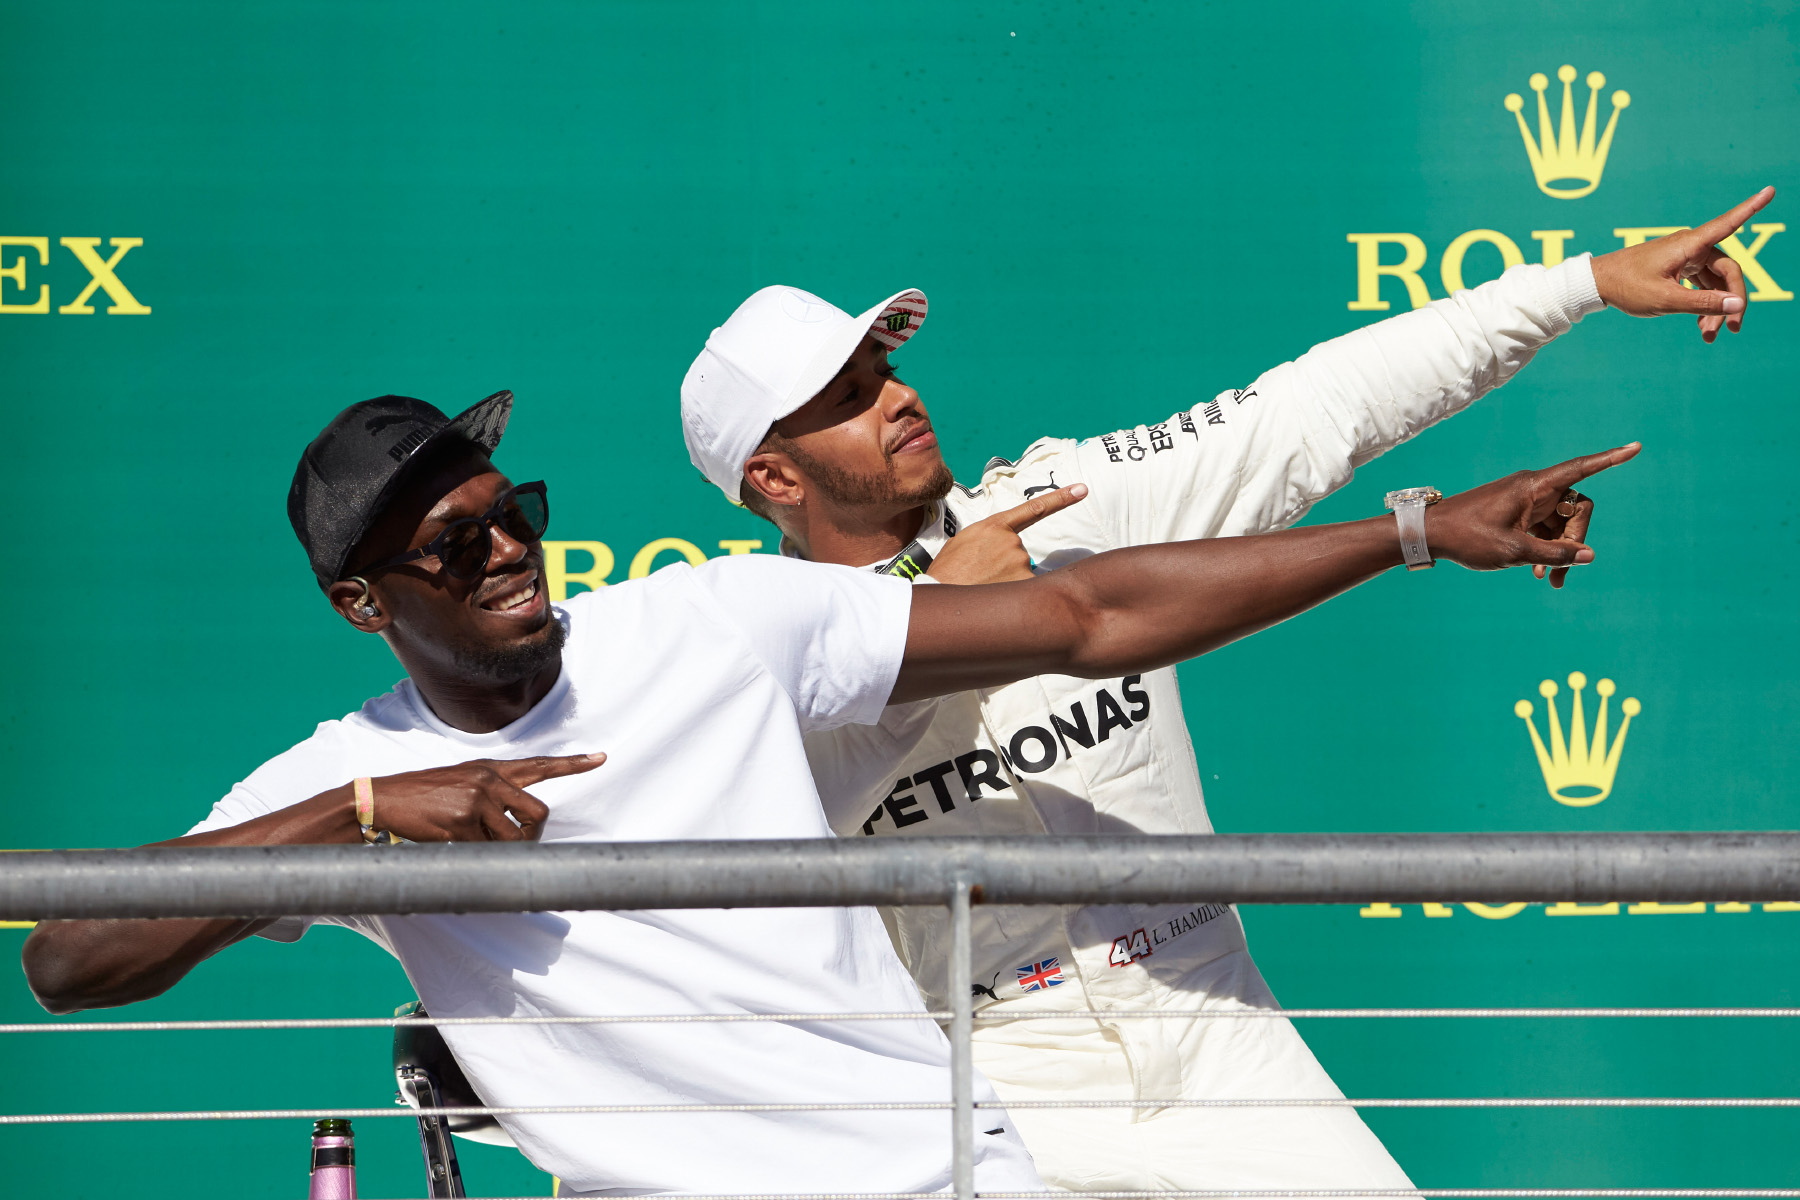 Lewis Hamilton celebrates with Usain Bolt on the 2017 United States Grand Prix podium.